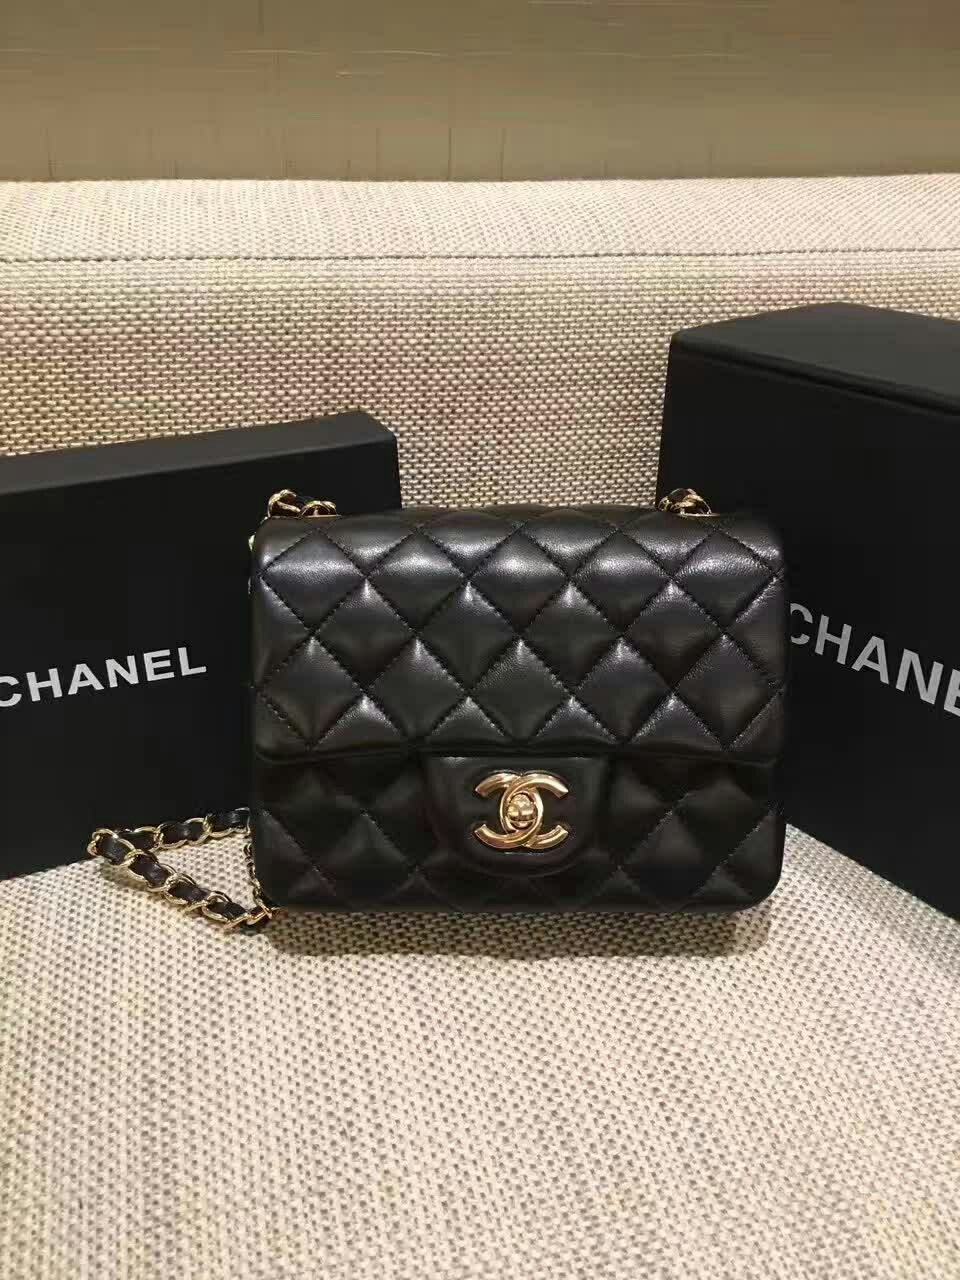 249e85a26b5f 118504,Chanel Bag,Size 17 cm | 2018-03 in 2019 | Bags, Chanel ...